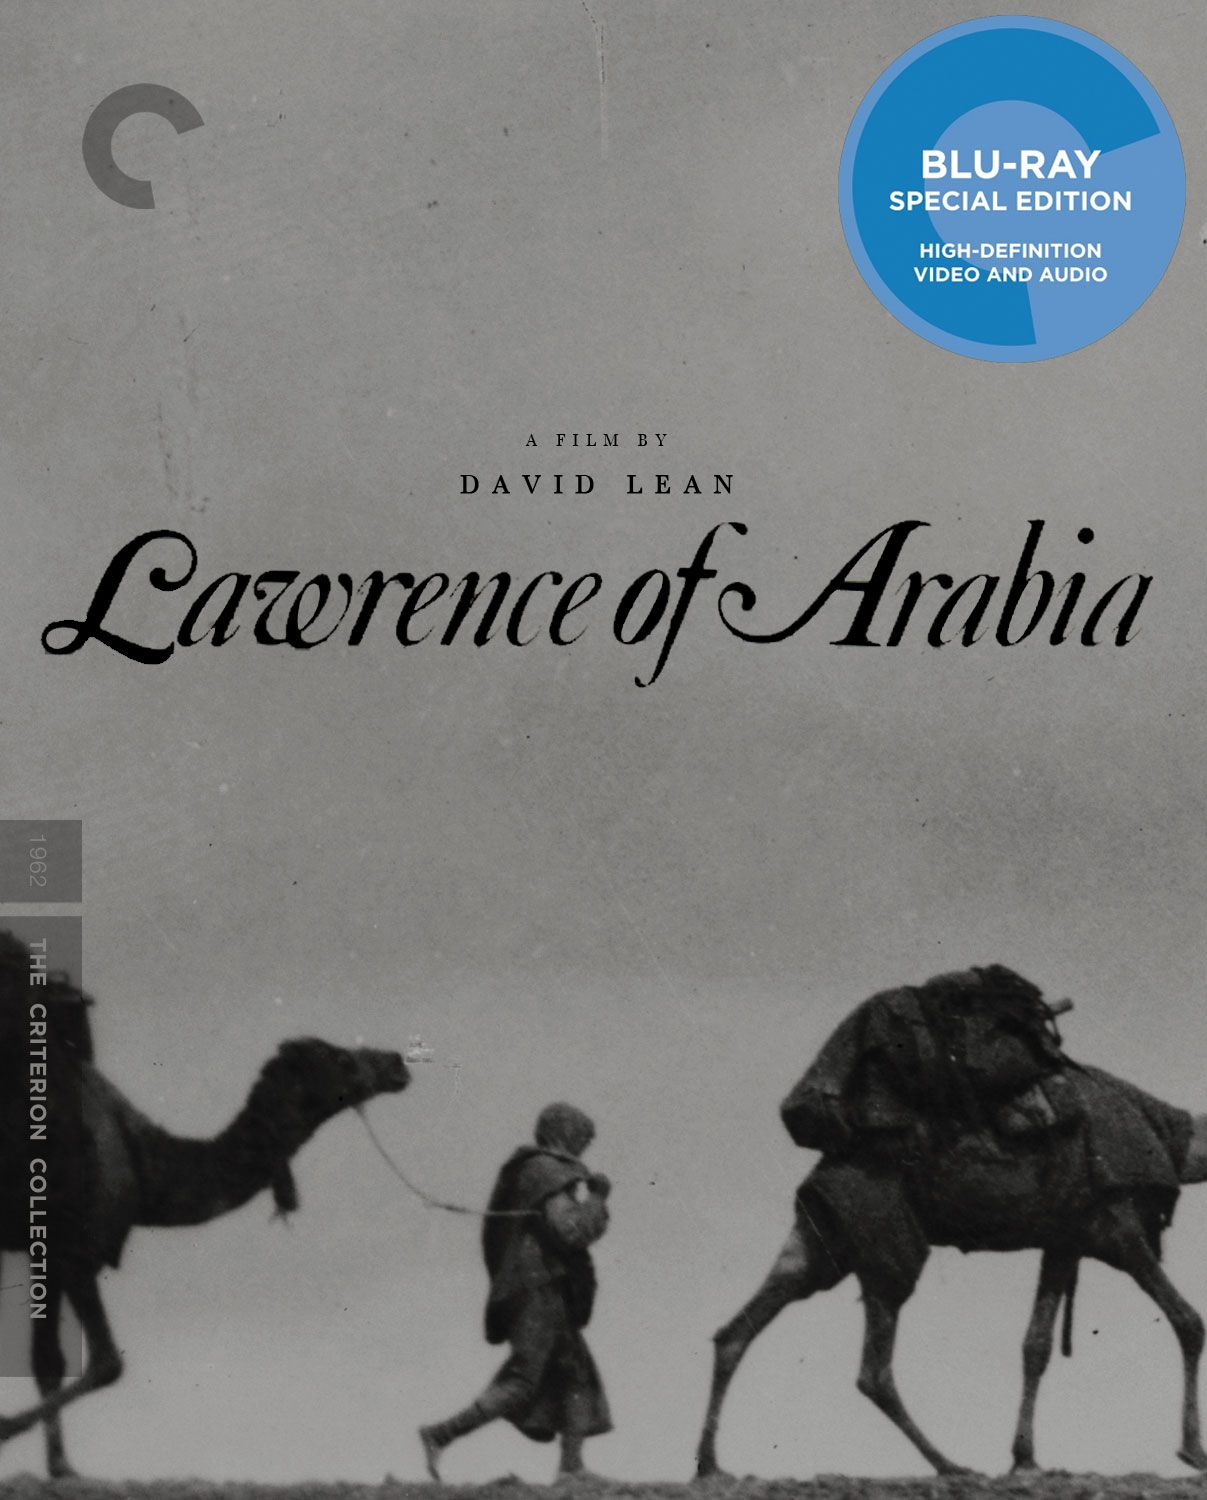 Old Movie Posters, Lawrence Of Arabia, Old Movies